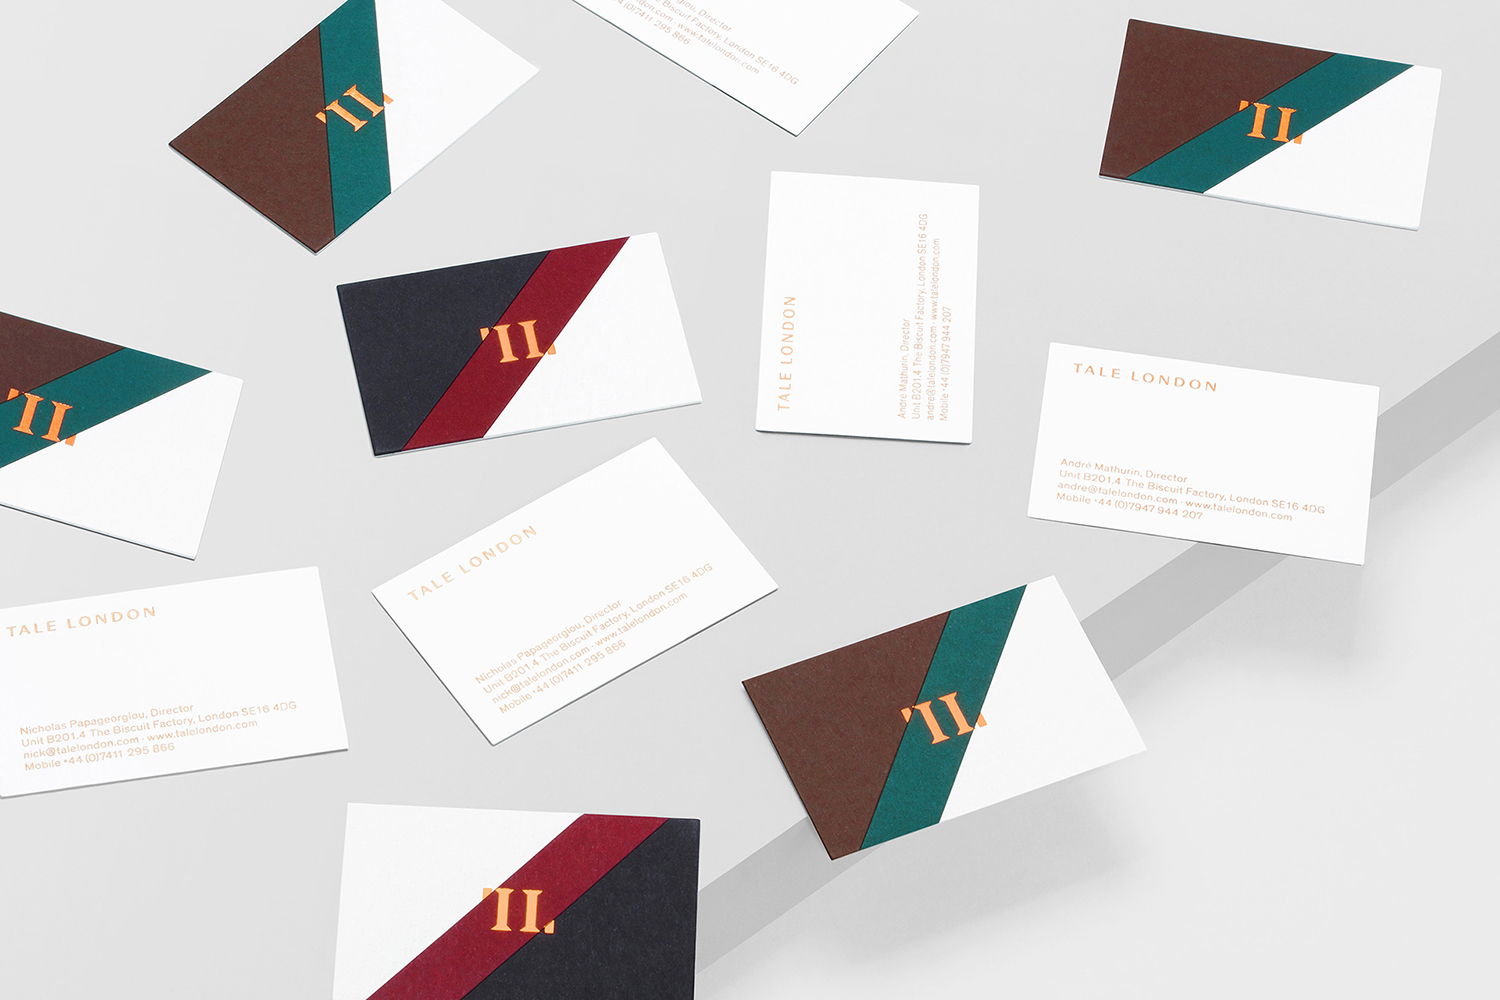 03-Tale-London-Branding-Print-Business-Card-Paper-Marquetry-Two-Times-Elliott-London-UK-BPO